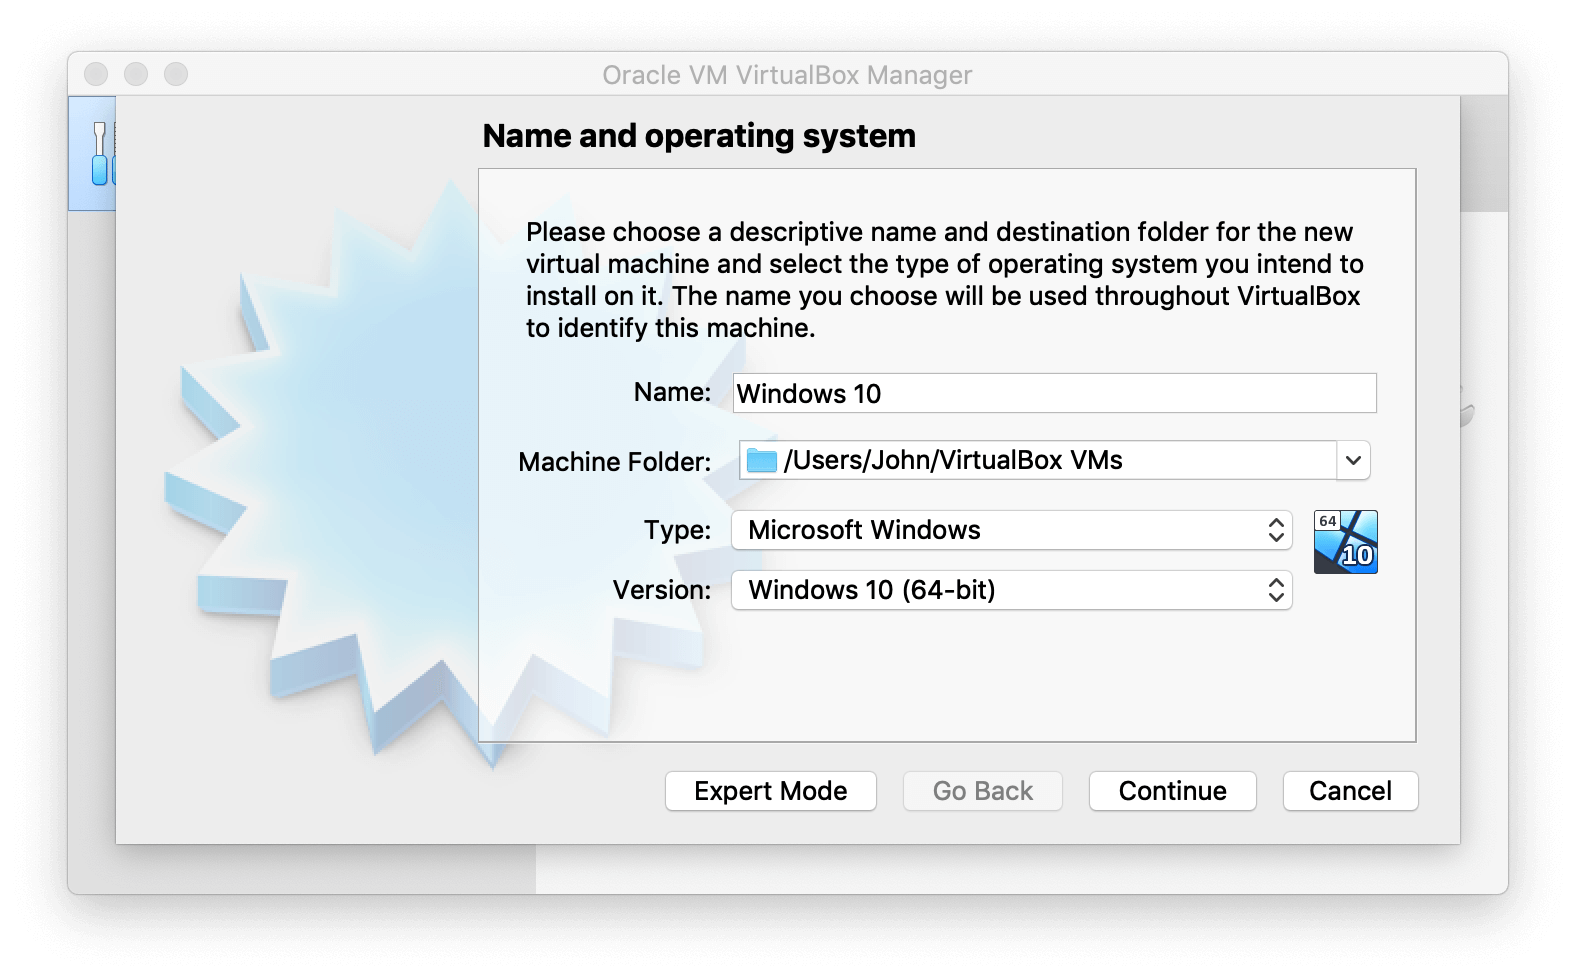 VirtualBox Manager asking to enter name for virtual machine